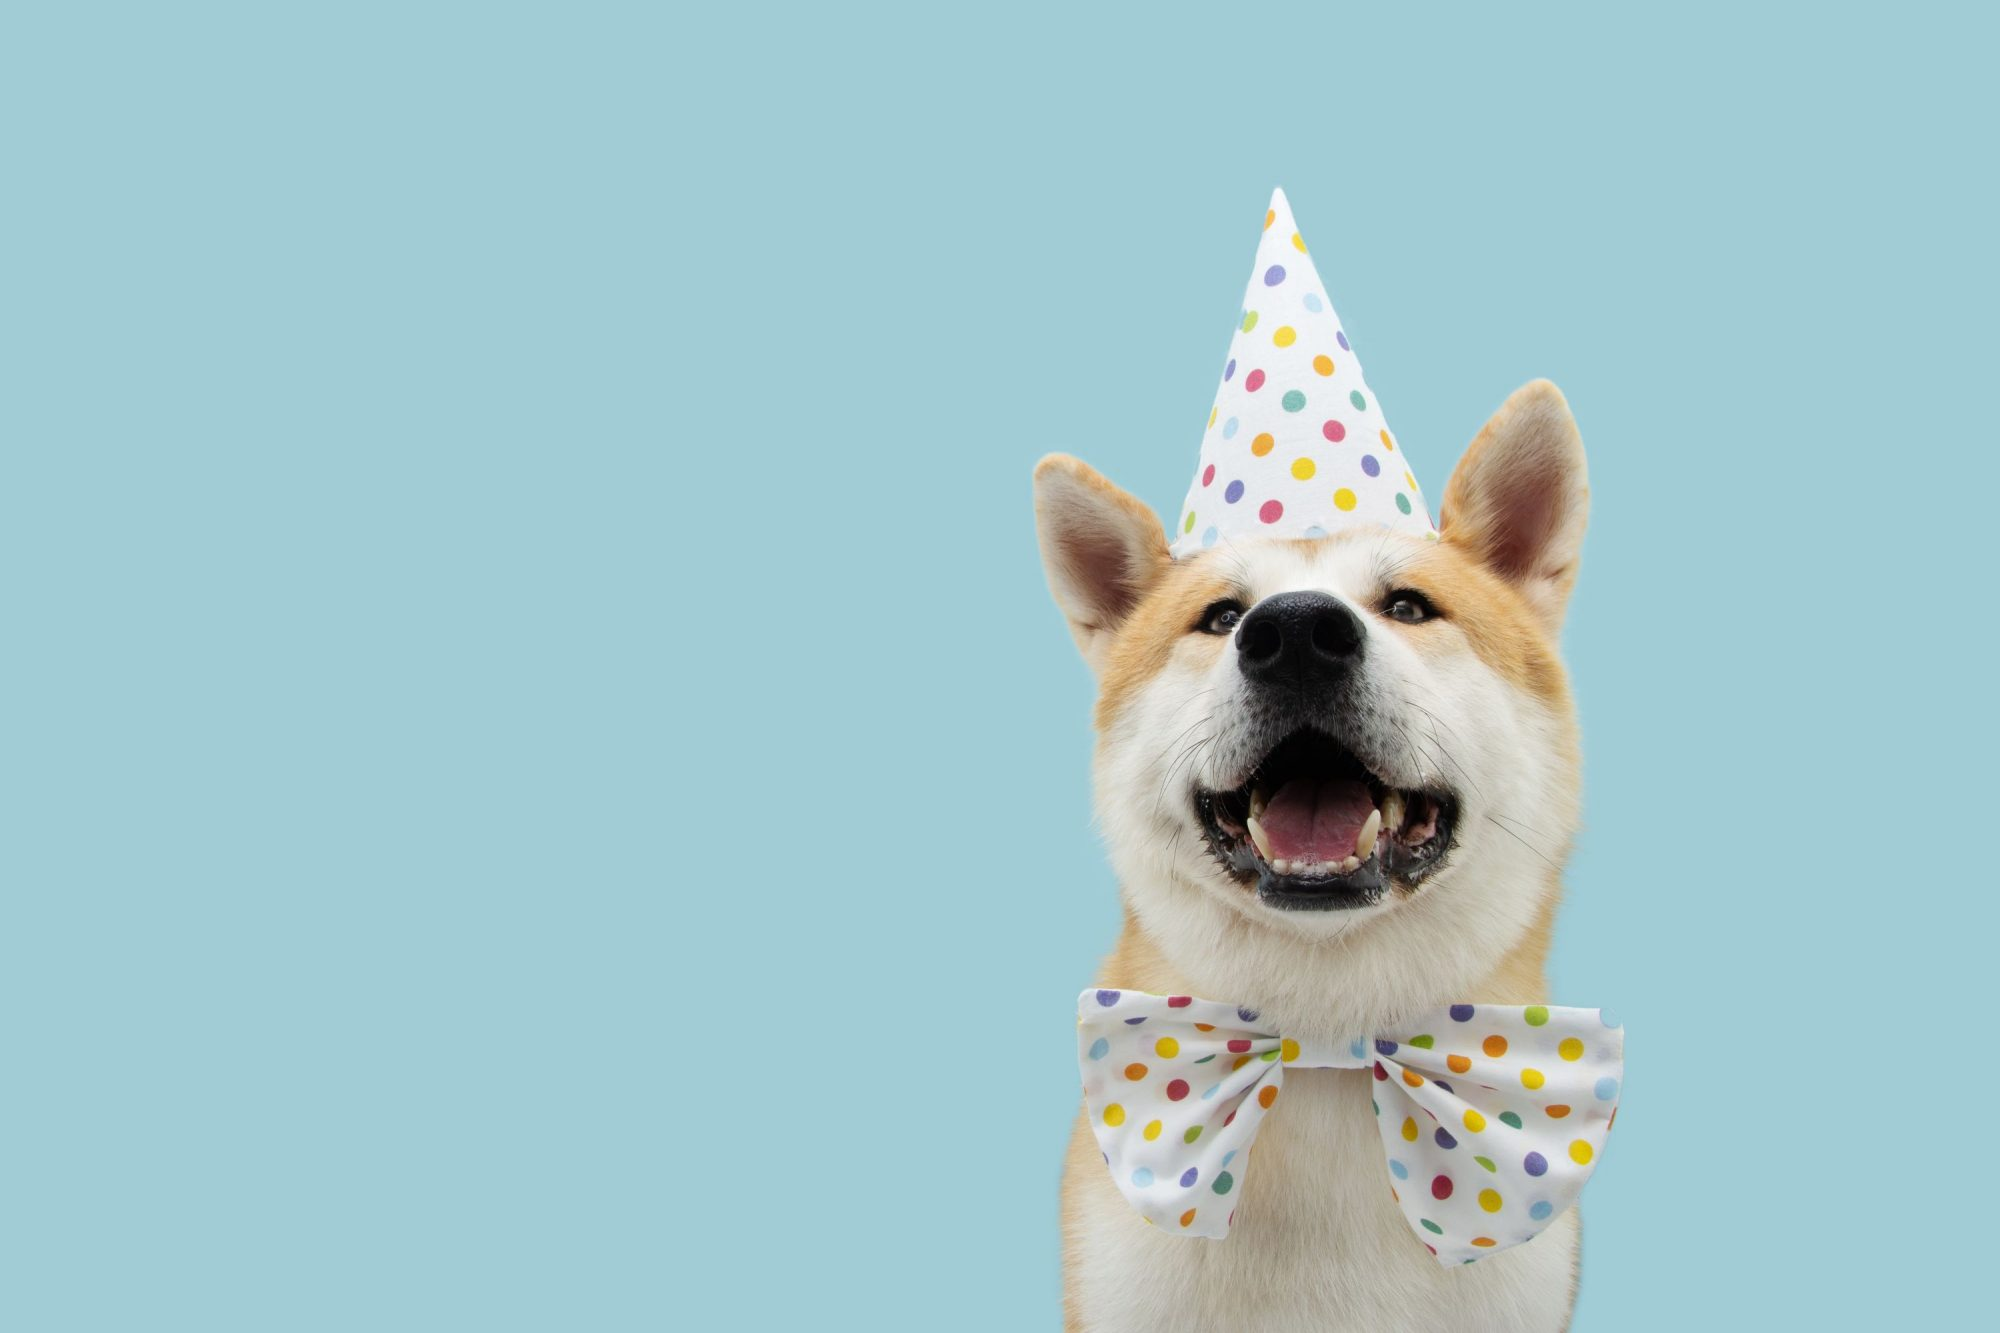 A dog in a party hat celebrating a pet birthday.